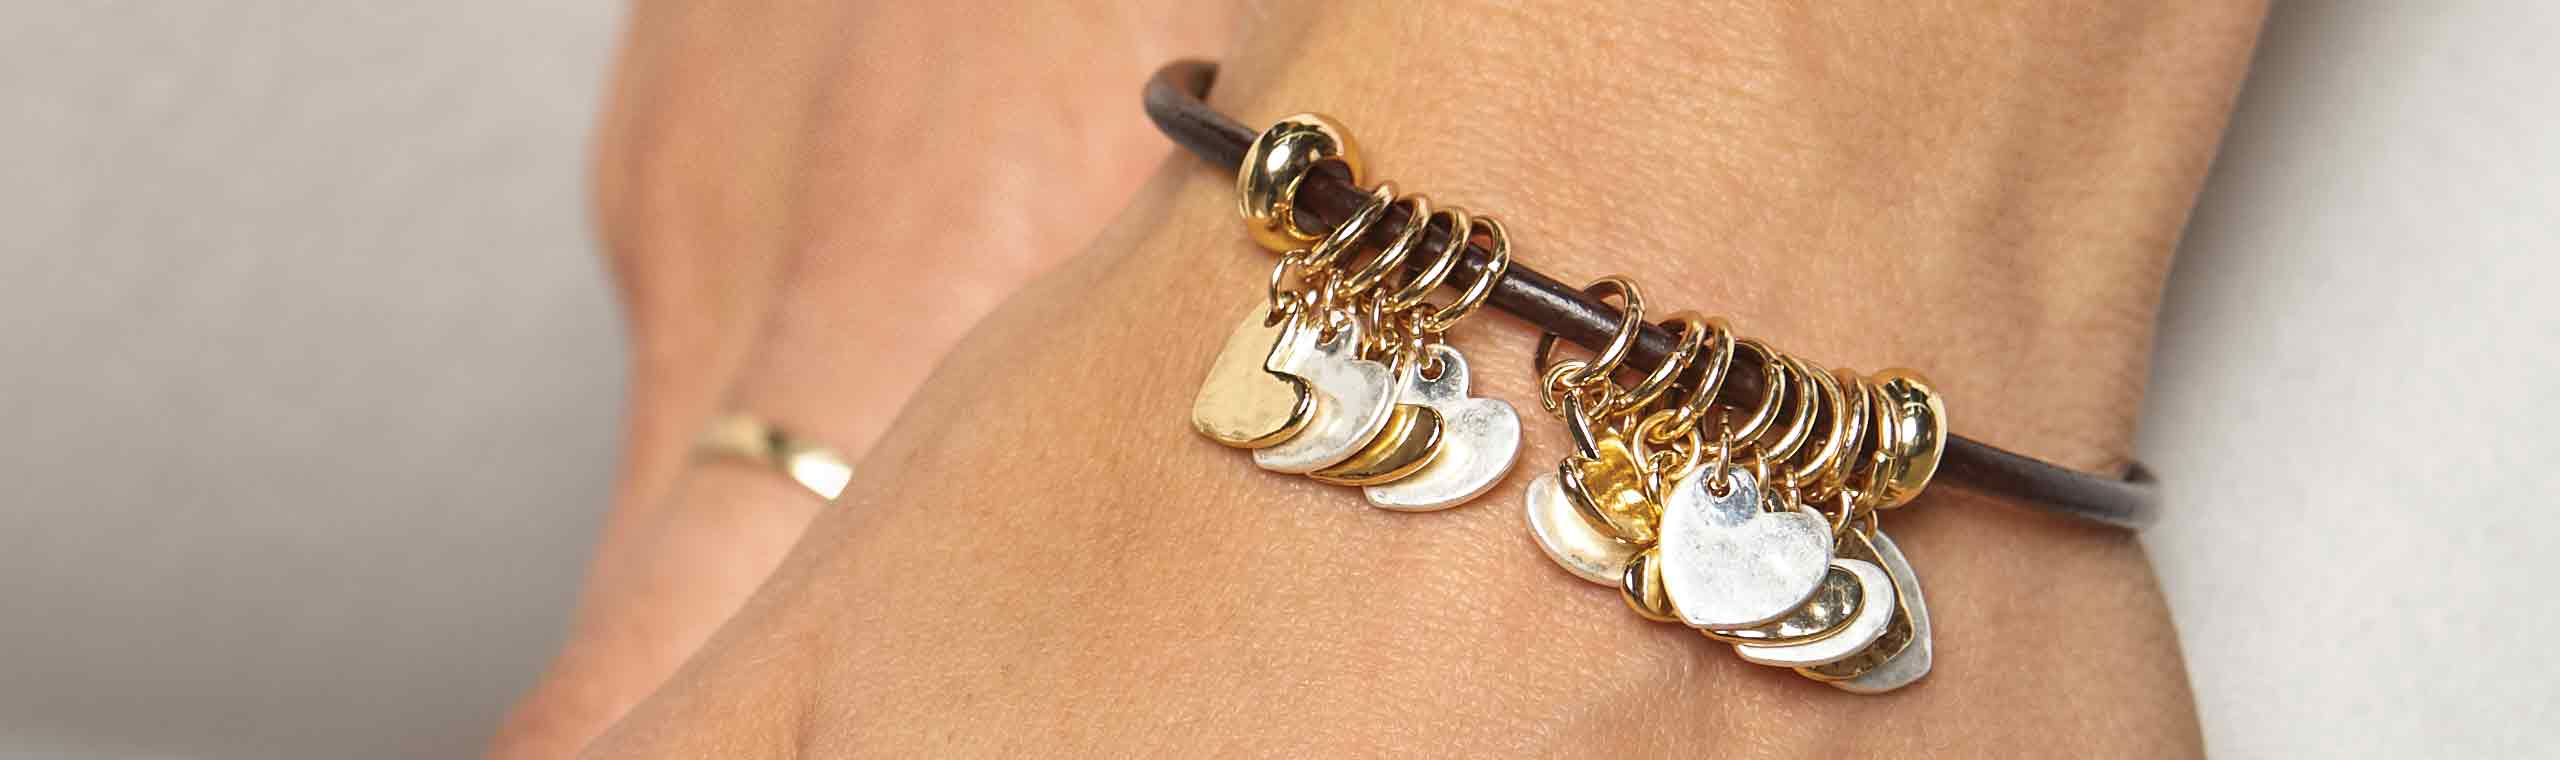 a women wearing a bracelet with heart charms